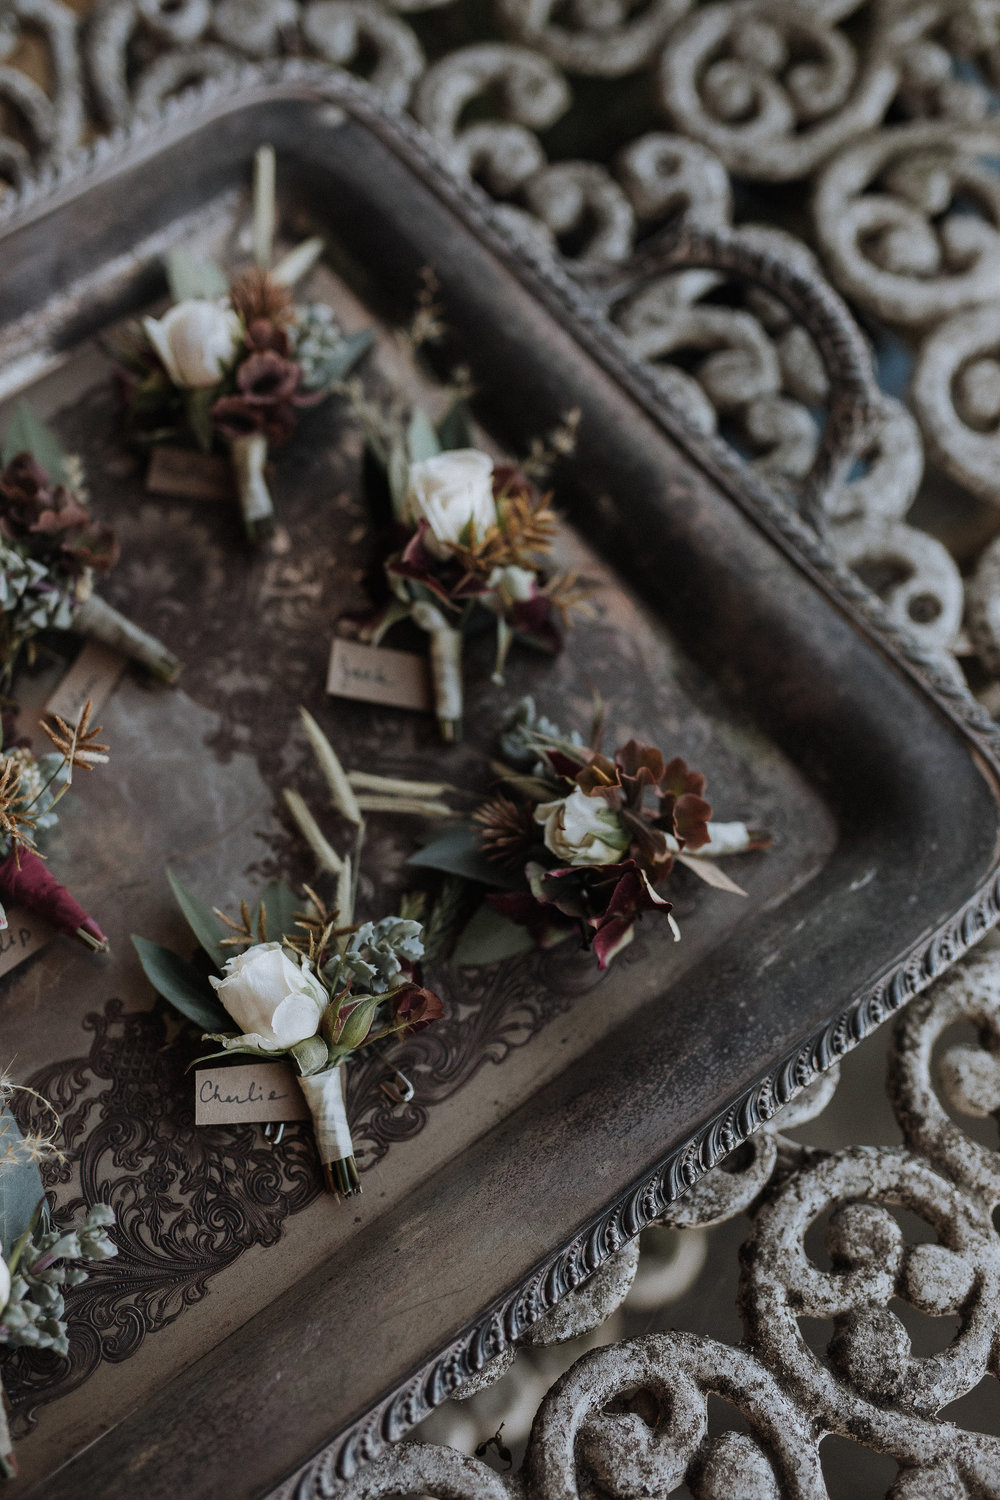 Textural boutonnieres with interesting accents in shades of dusty rose, sage, and gold by Venn Floral at Olympia's Valley Estate photographed by Gretchen Gause.